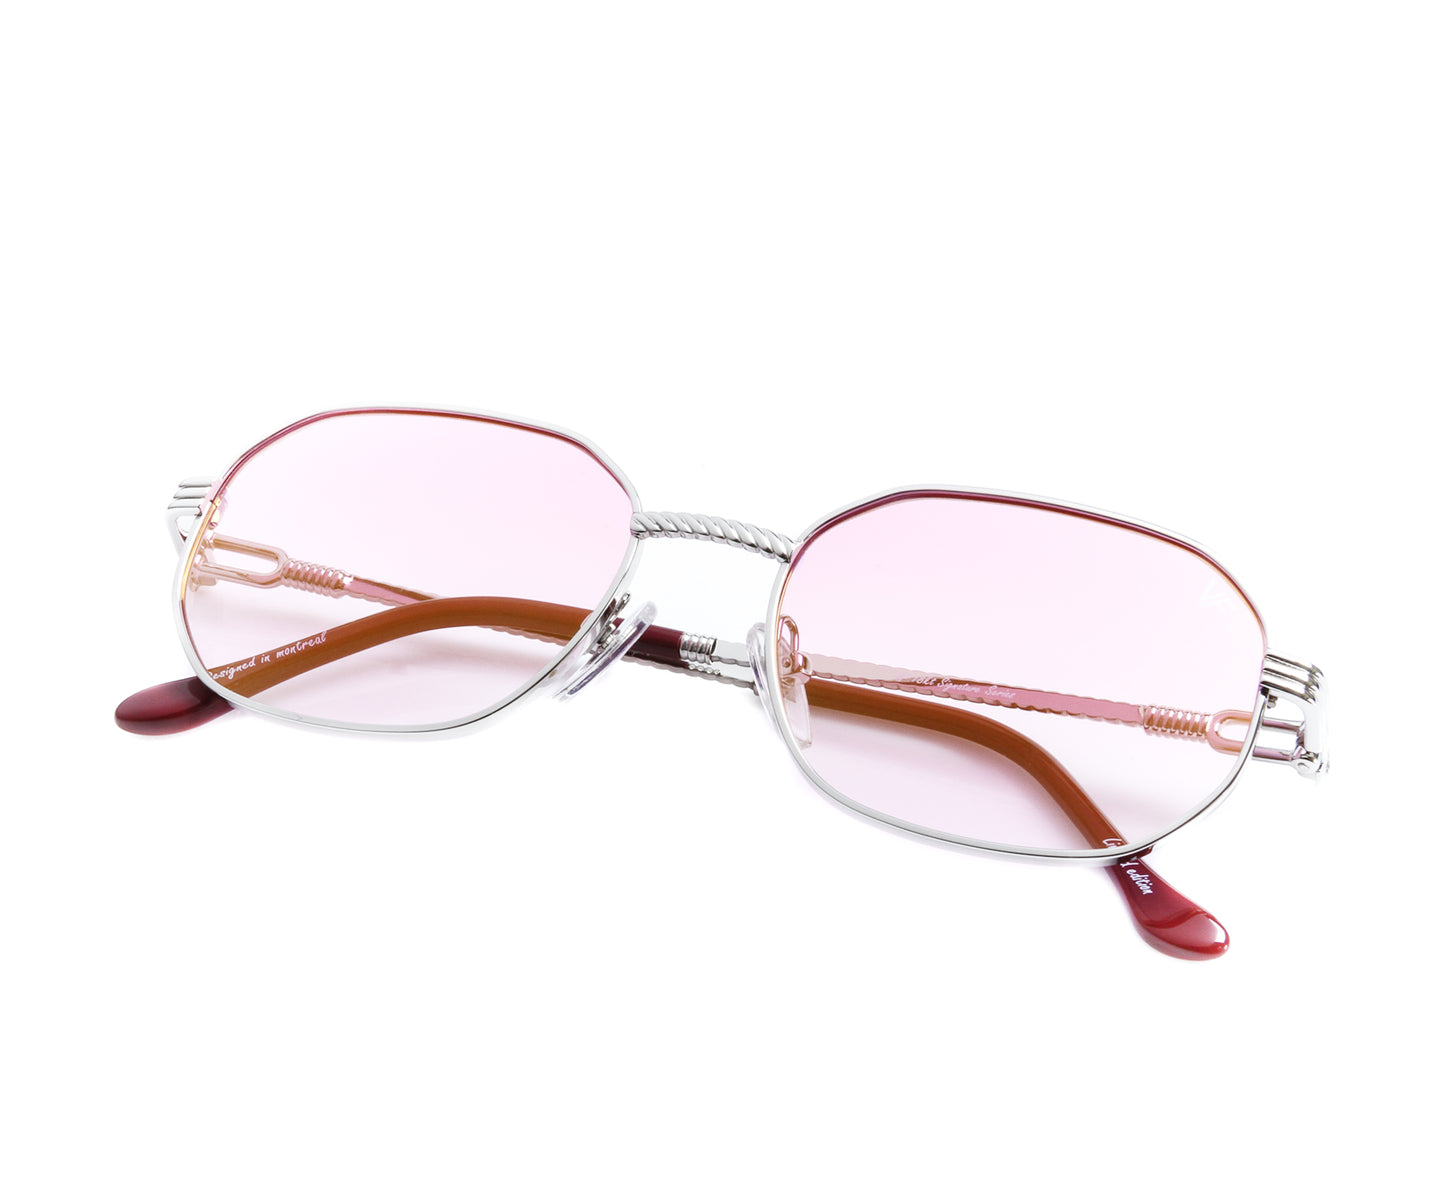 VF Hustler 18KT White Gold (Candy Pink), VF by Vintage Frames , glasses frames, eyeglasses online, eyeglass frames, mens glasses, womens glasses, buy glasses online, designer eyeglasses, vintage sunglasses, retro sunglasses, vintage glasses, sunglass, eyeglass, glasses, lens, vintage frames company, vf